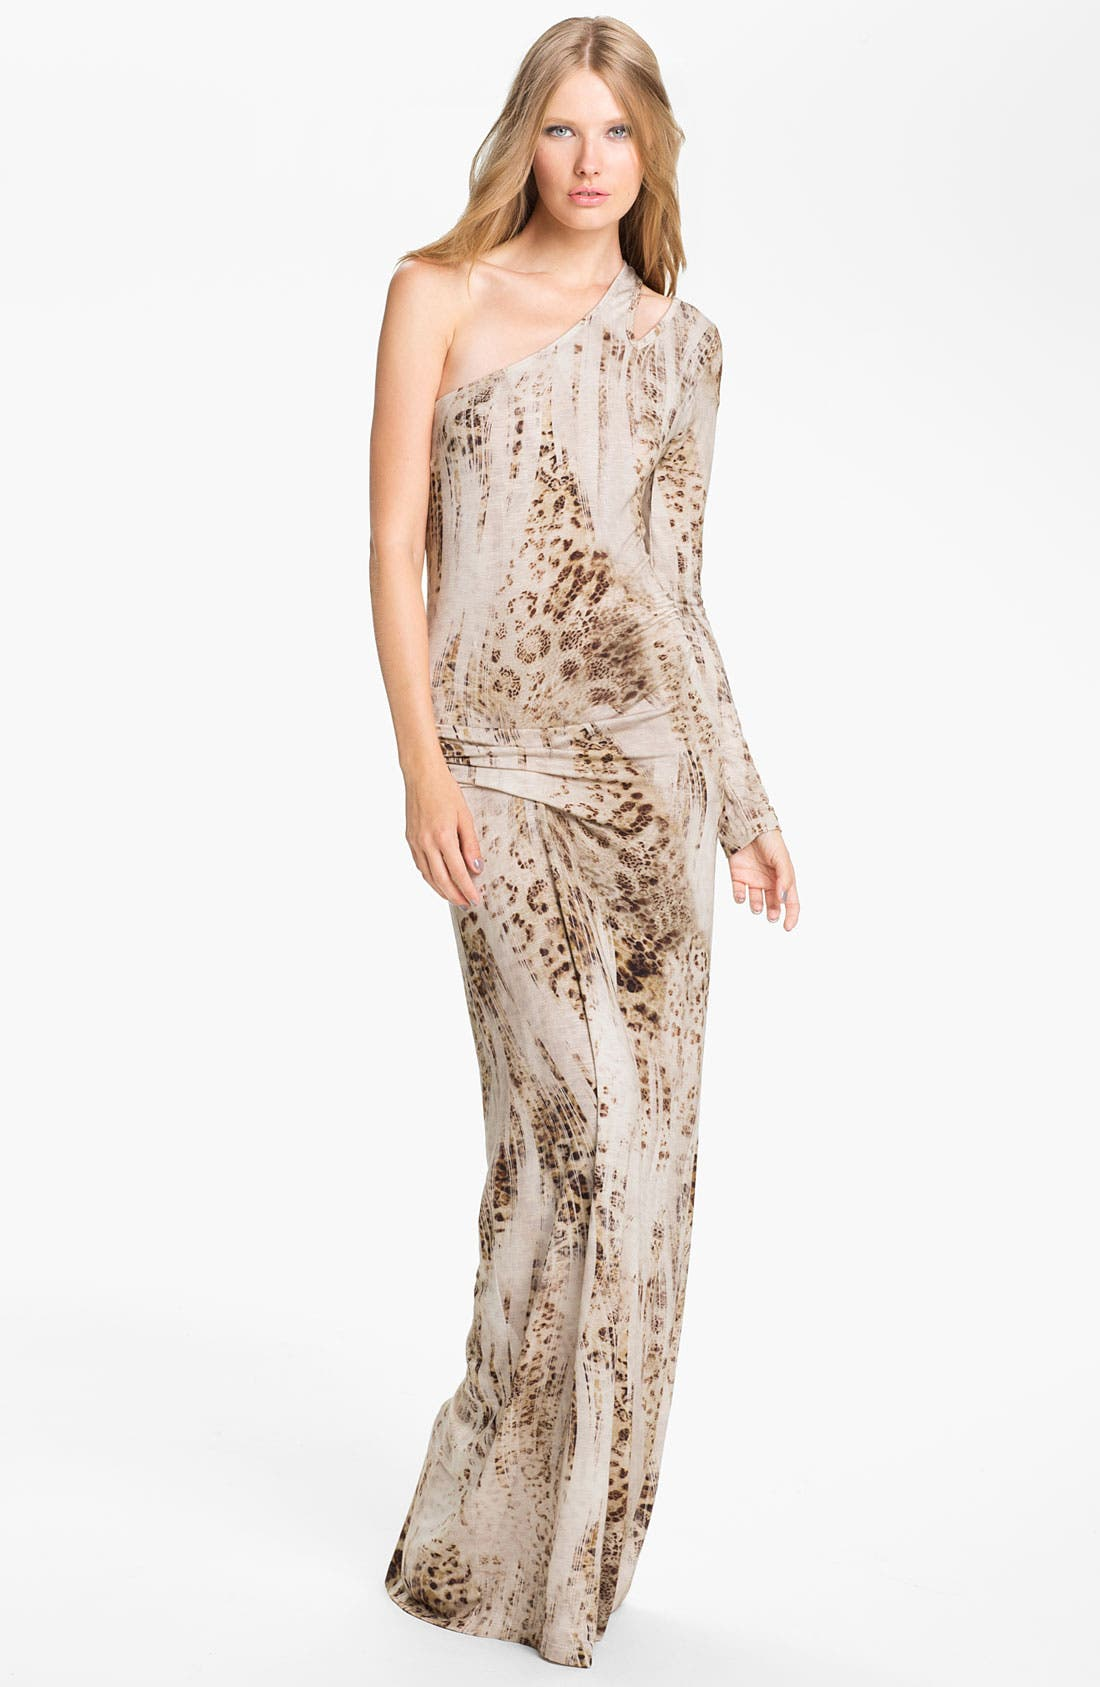 Alternate Image 1 Selected - Young, Fabulous & Broke 'Vinny' One Shoulder Maxi Dress